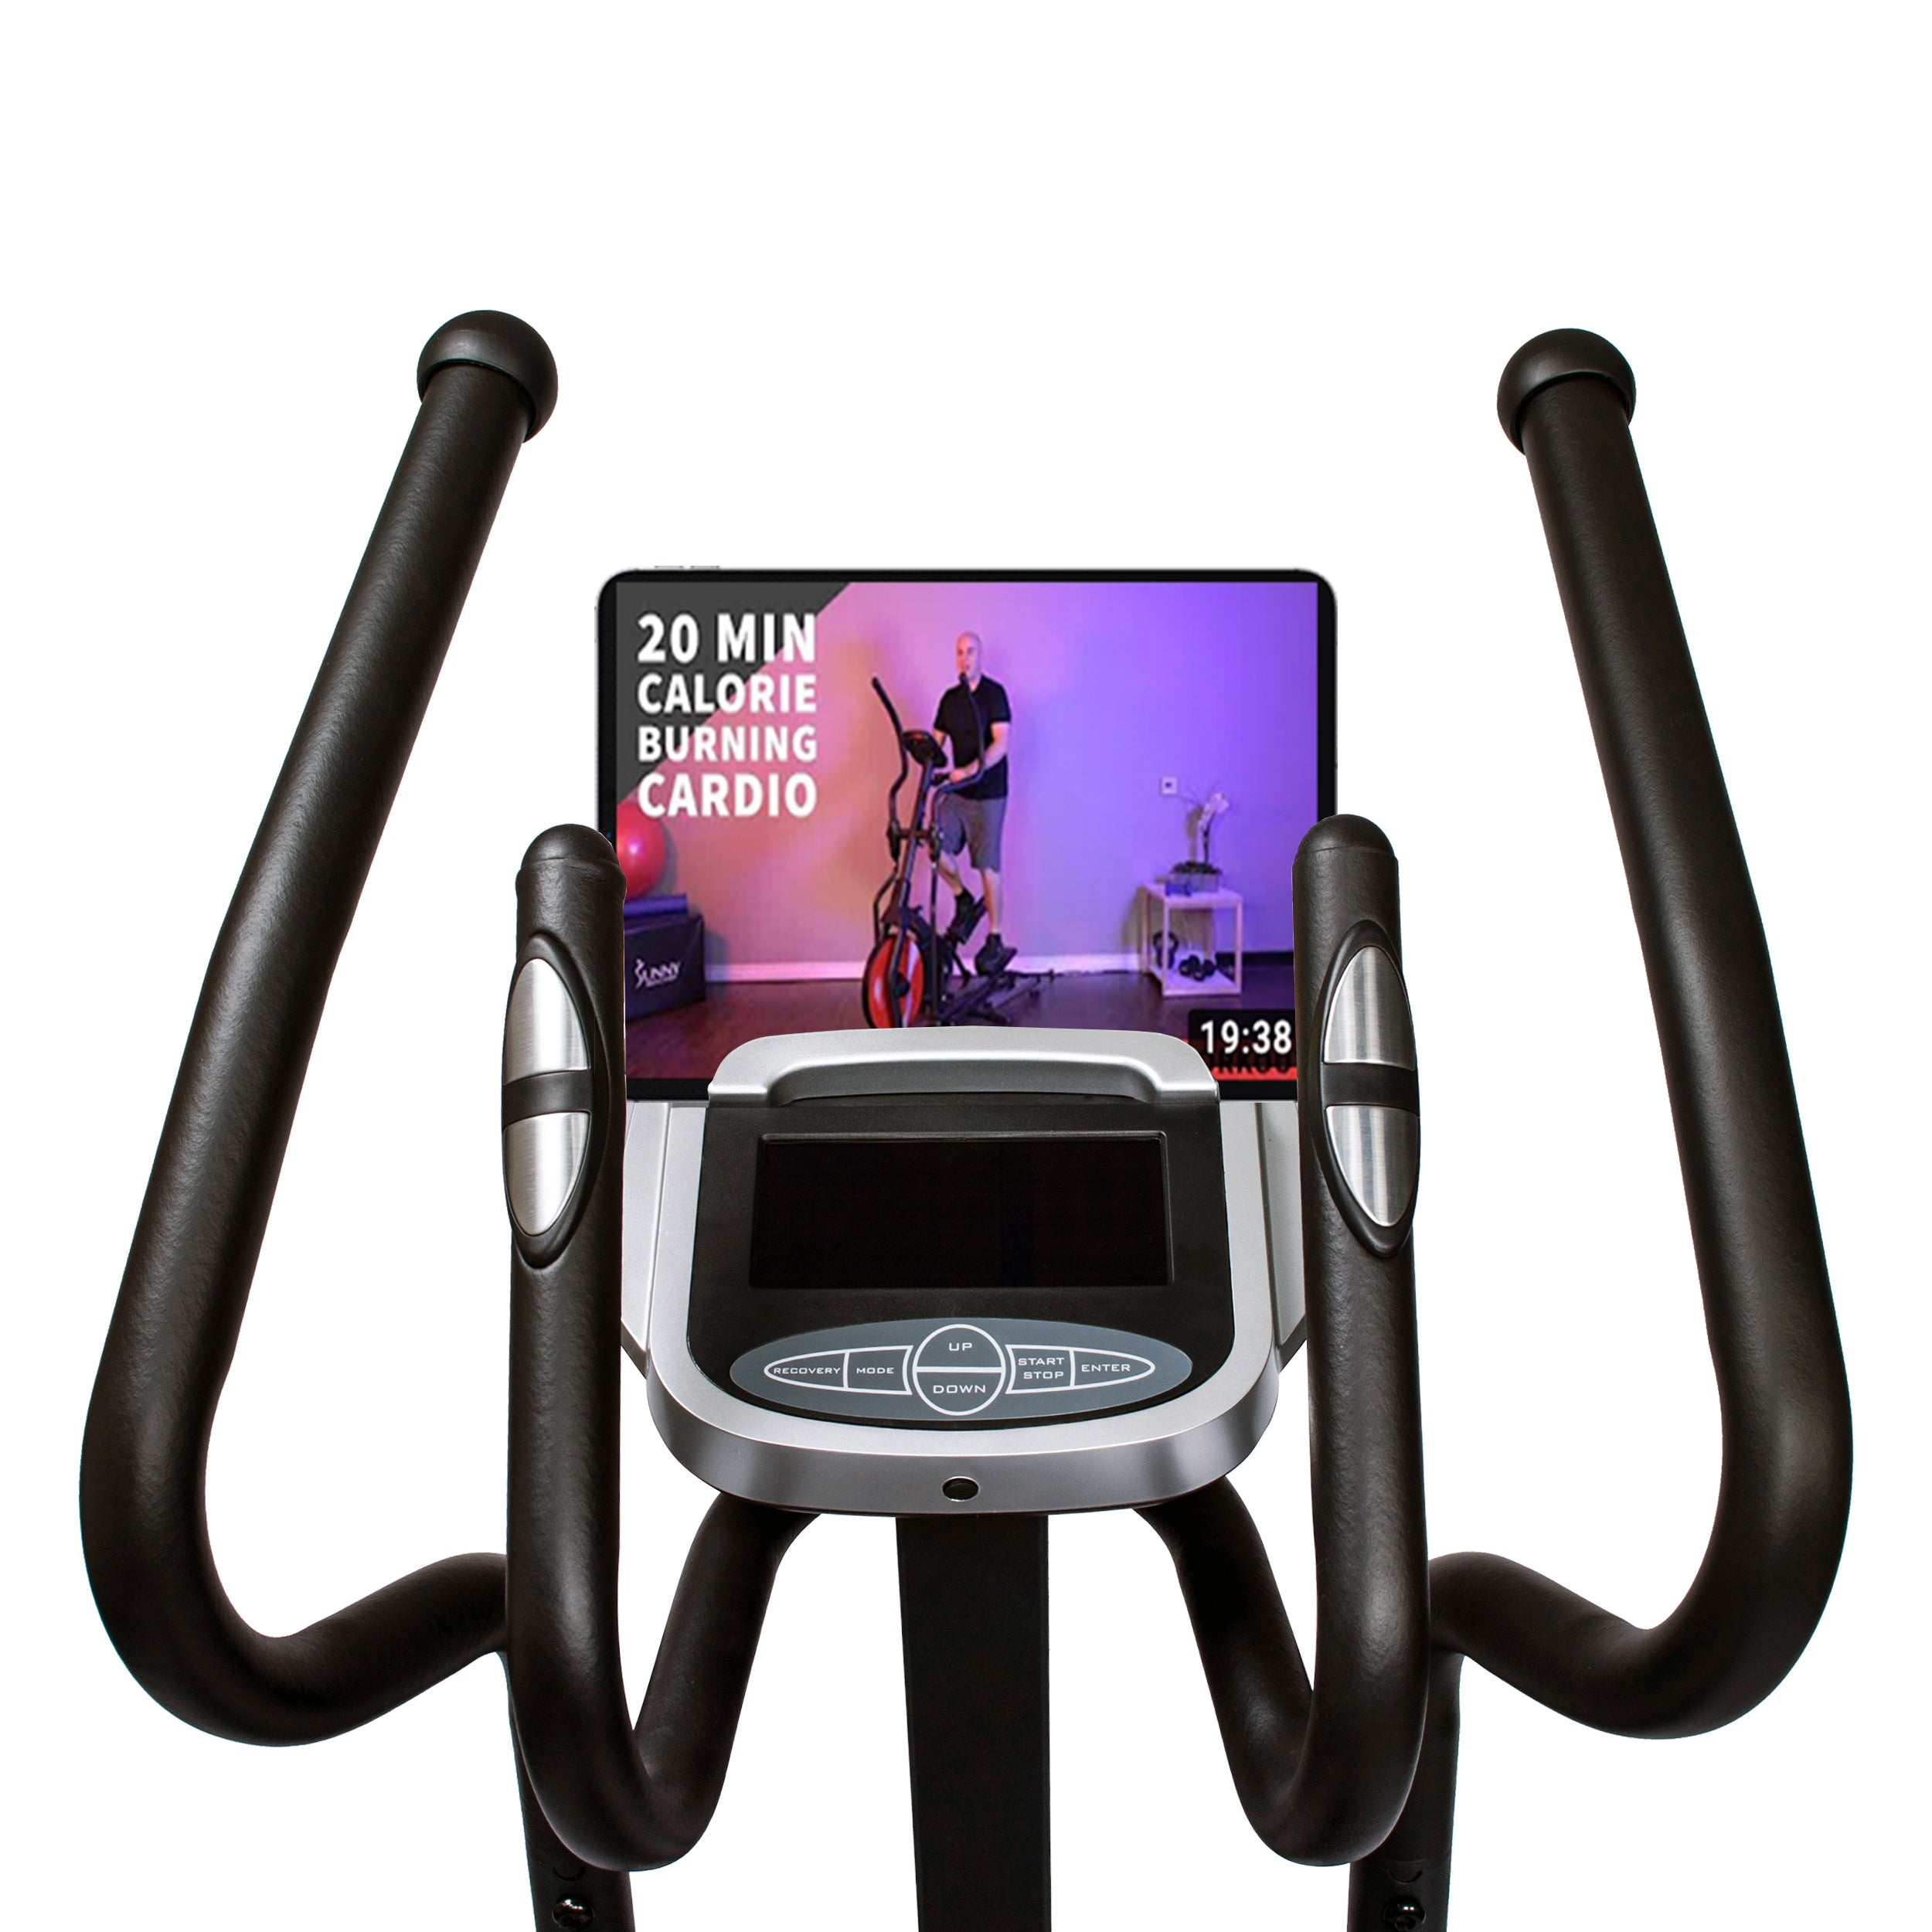 sunny-health-fitness-ellipticals-magnetic-elliptical-machine-tablet-holder-LCD-monitor-heart-rate-monitoring-circuit-zonw-SF-E3862-device-holder